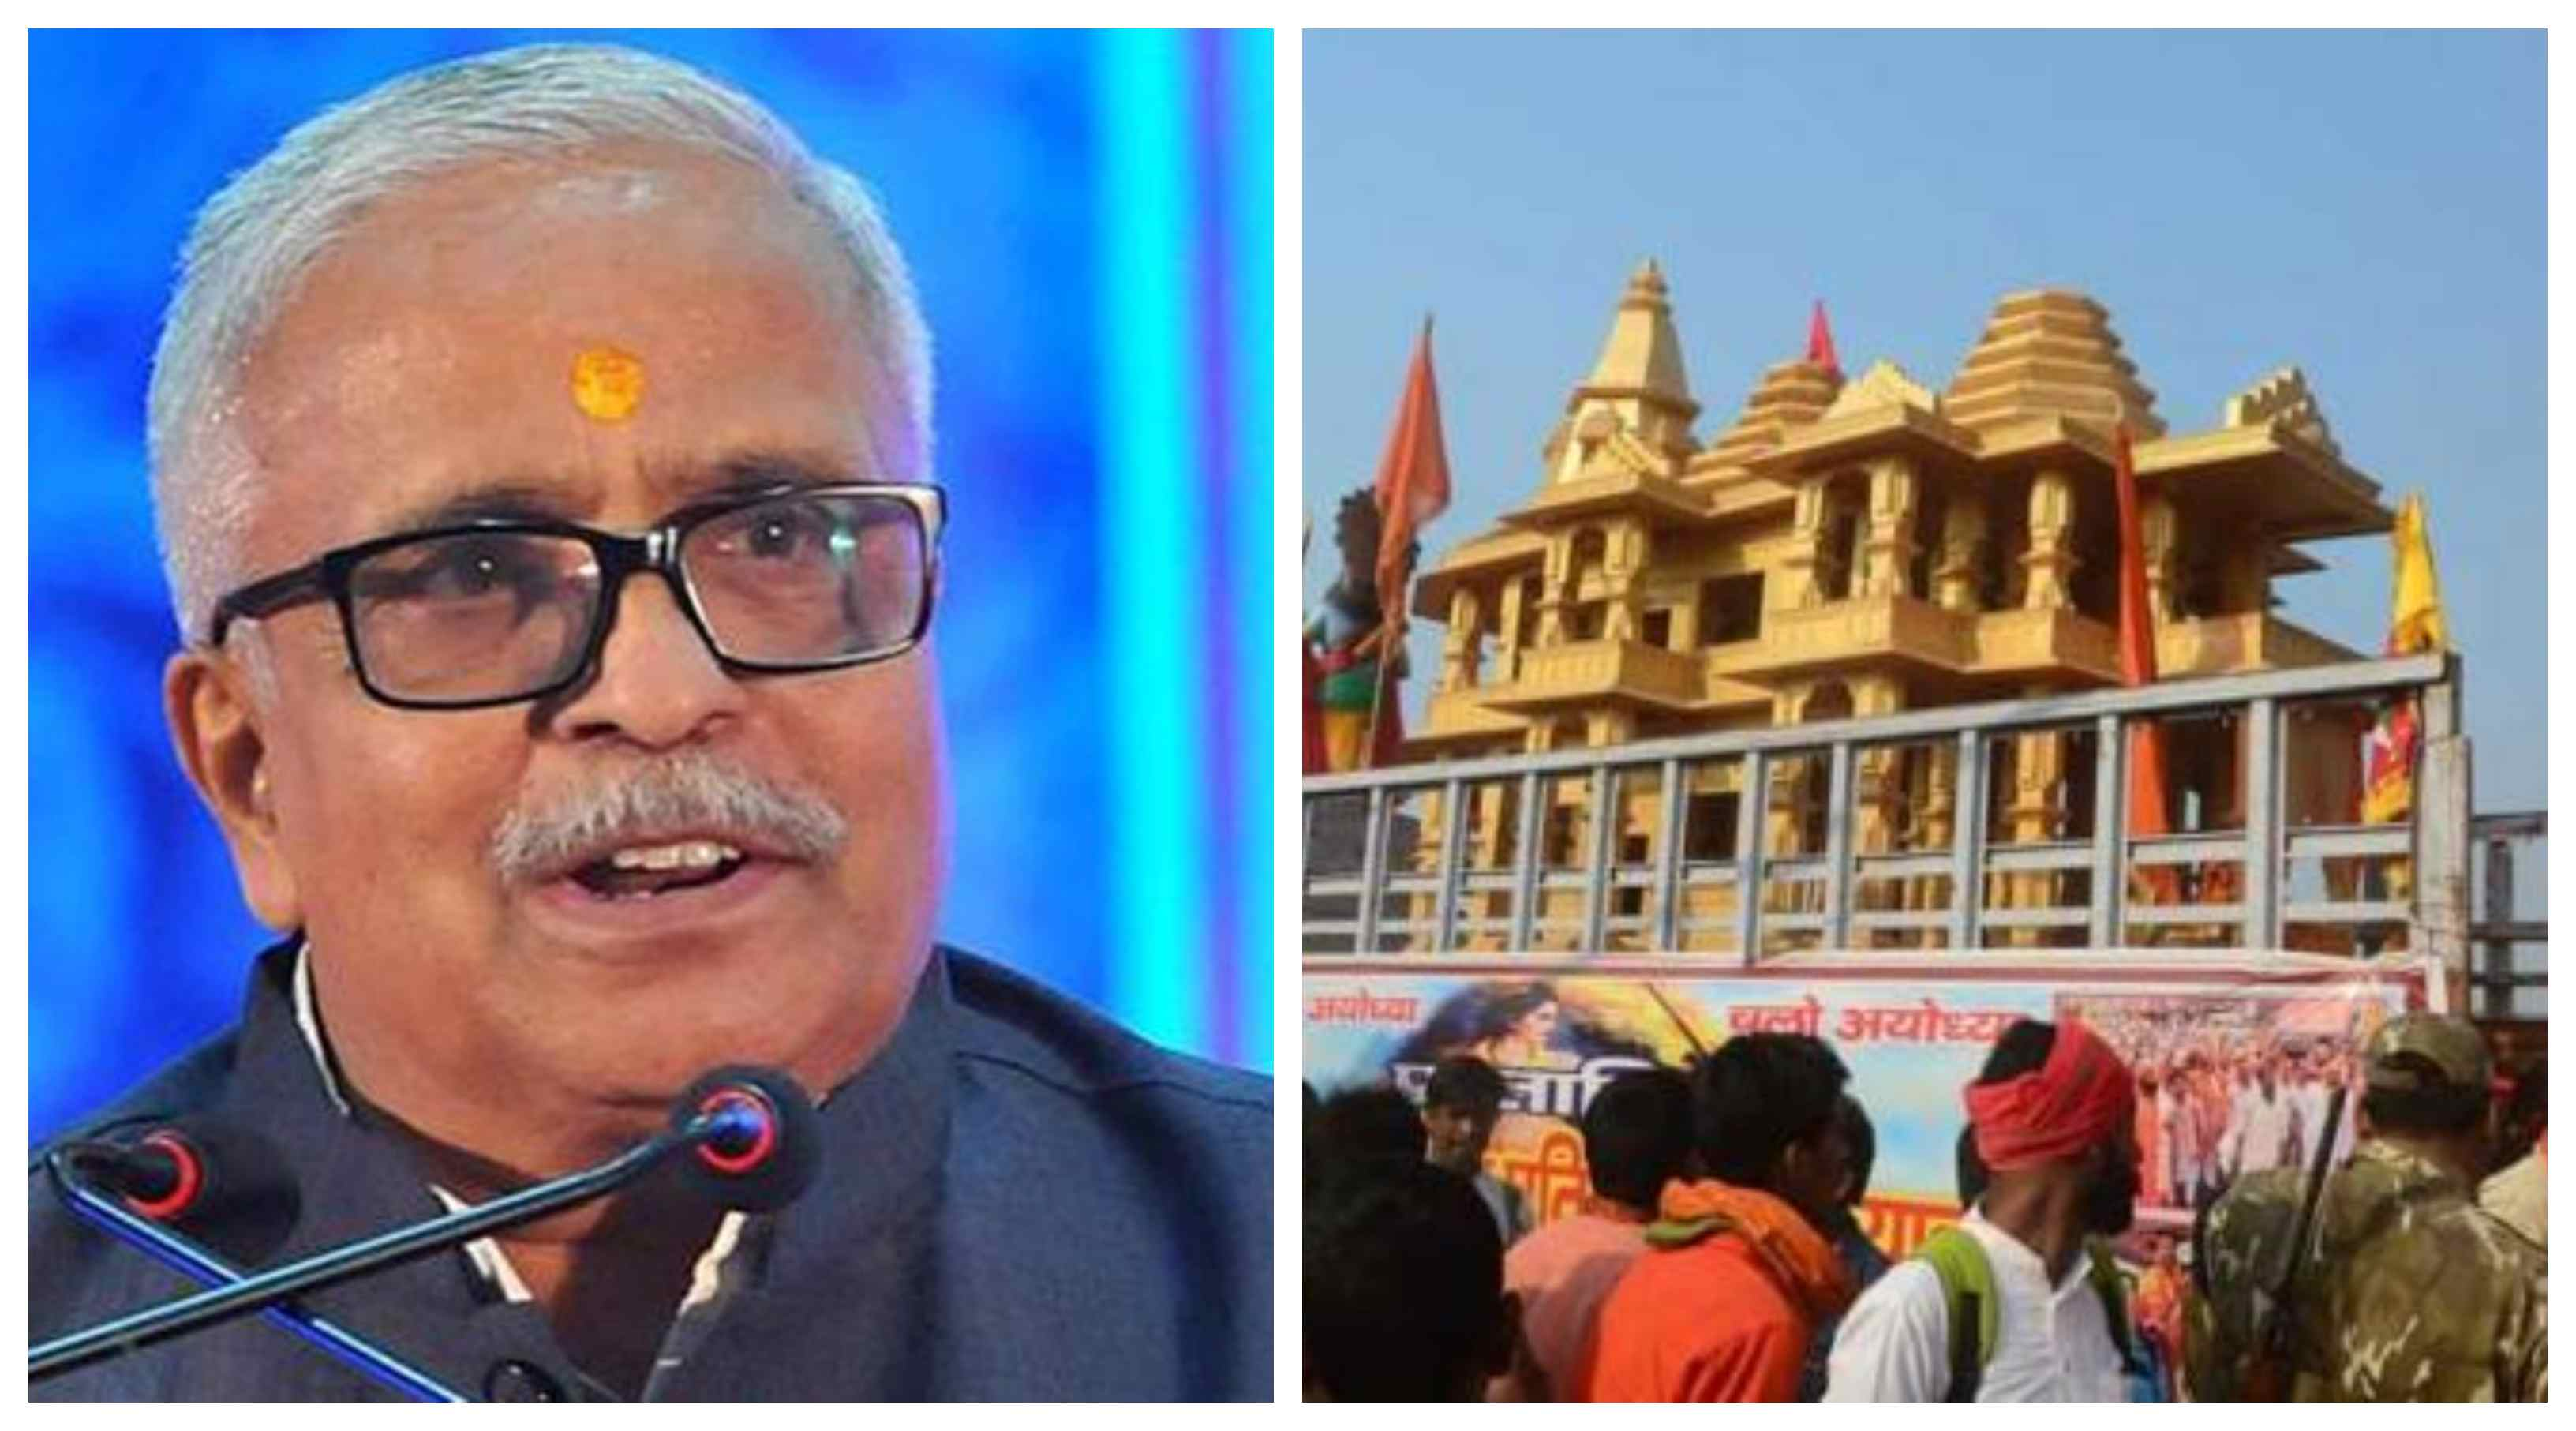 Ayodhya temple will be built in 2025 – Big statement by Bhaiyaji Joshi